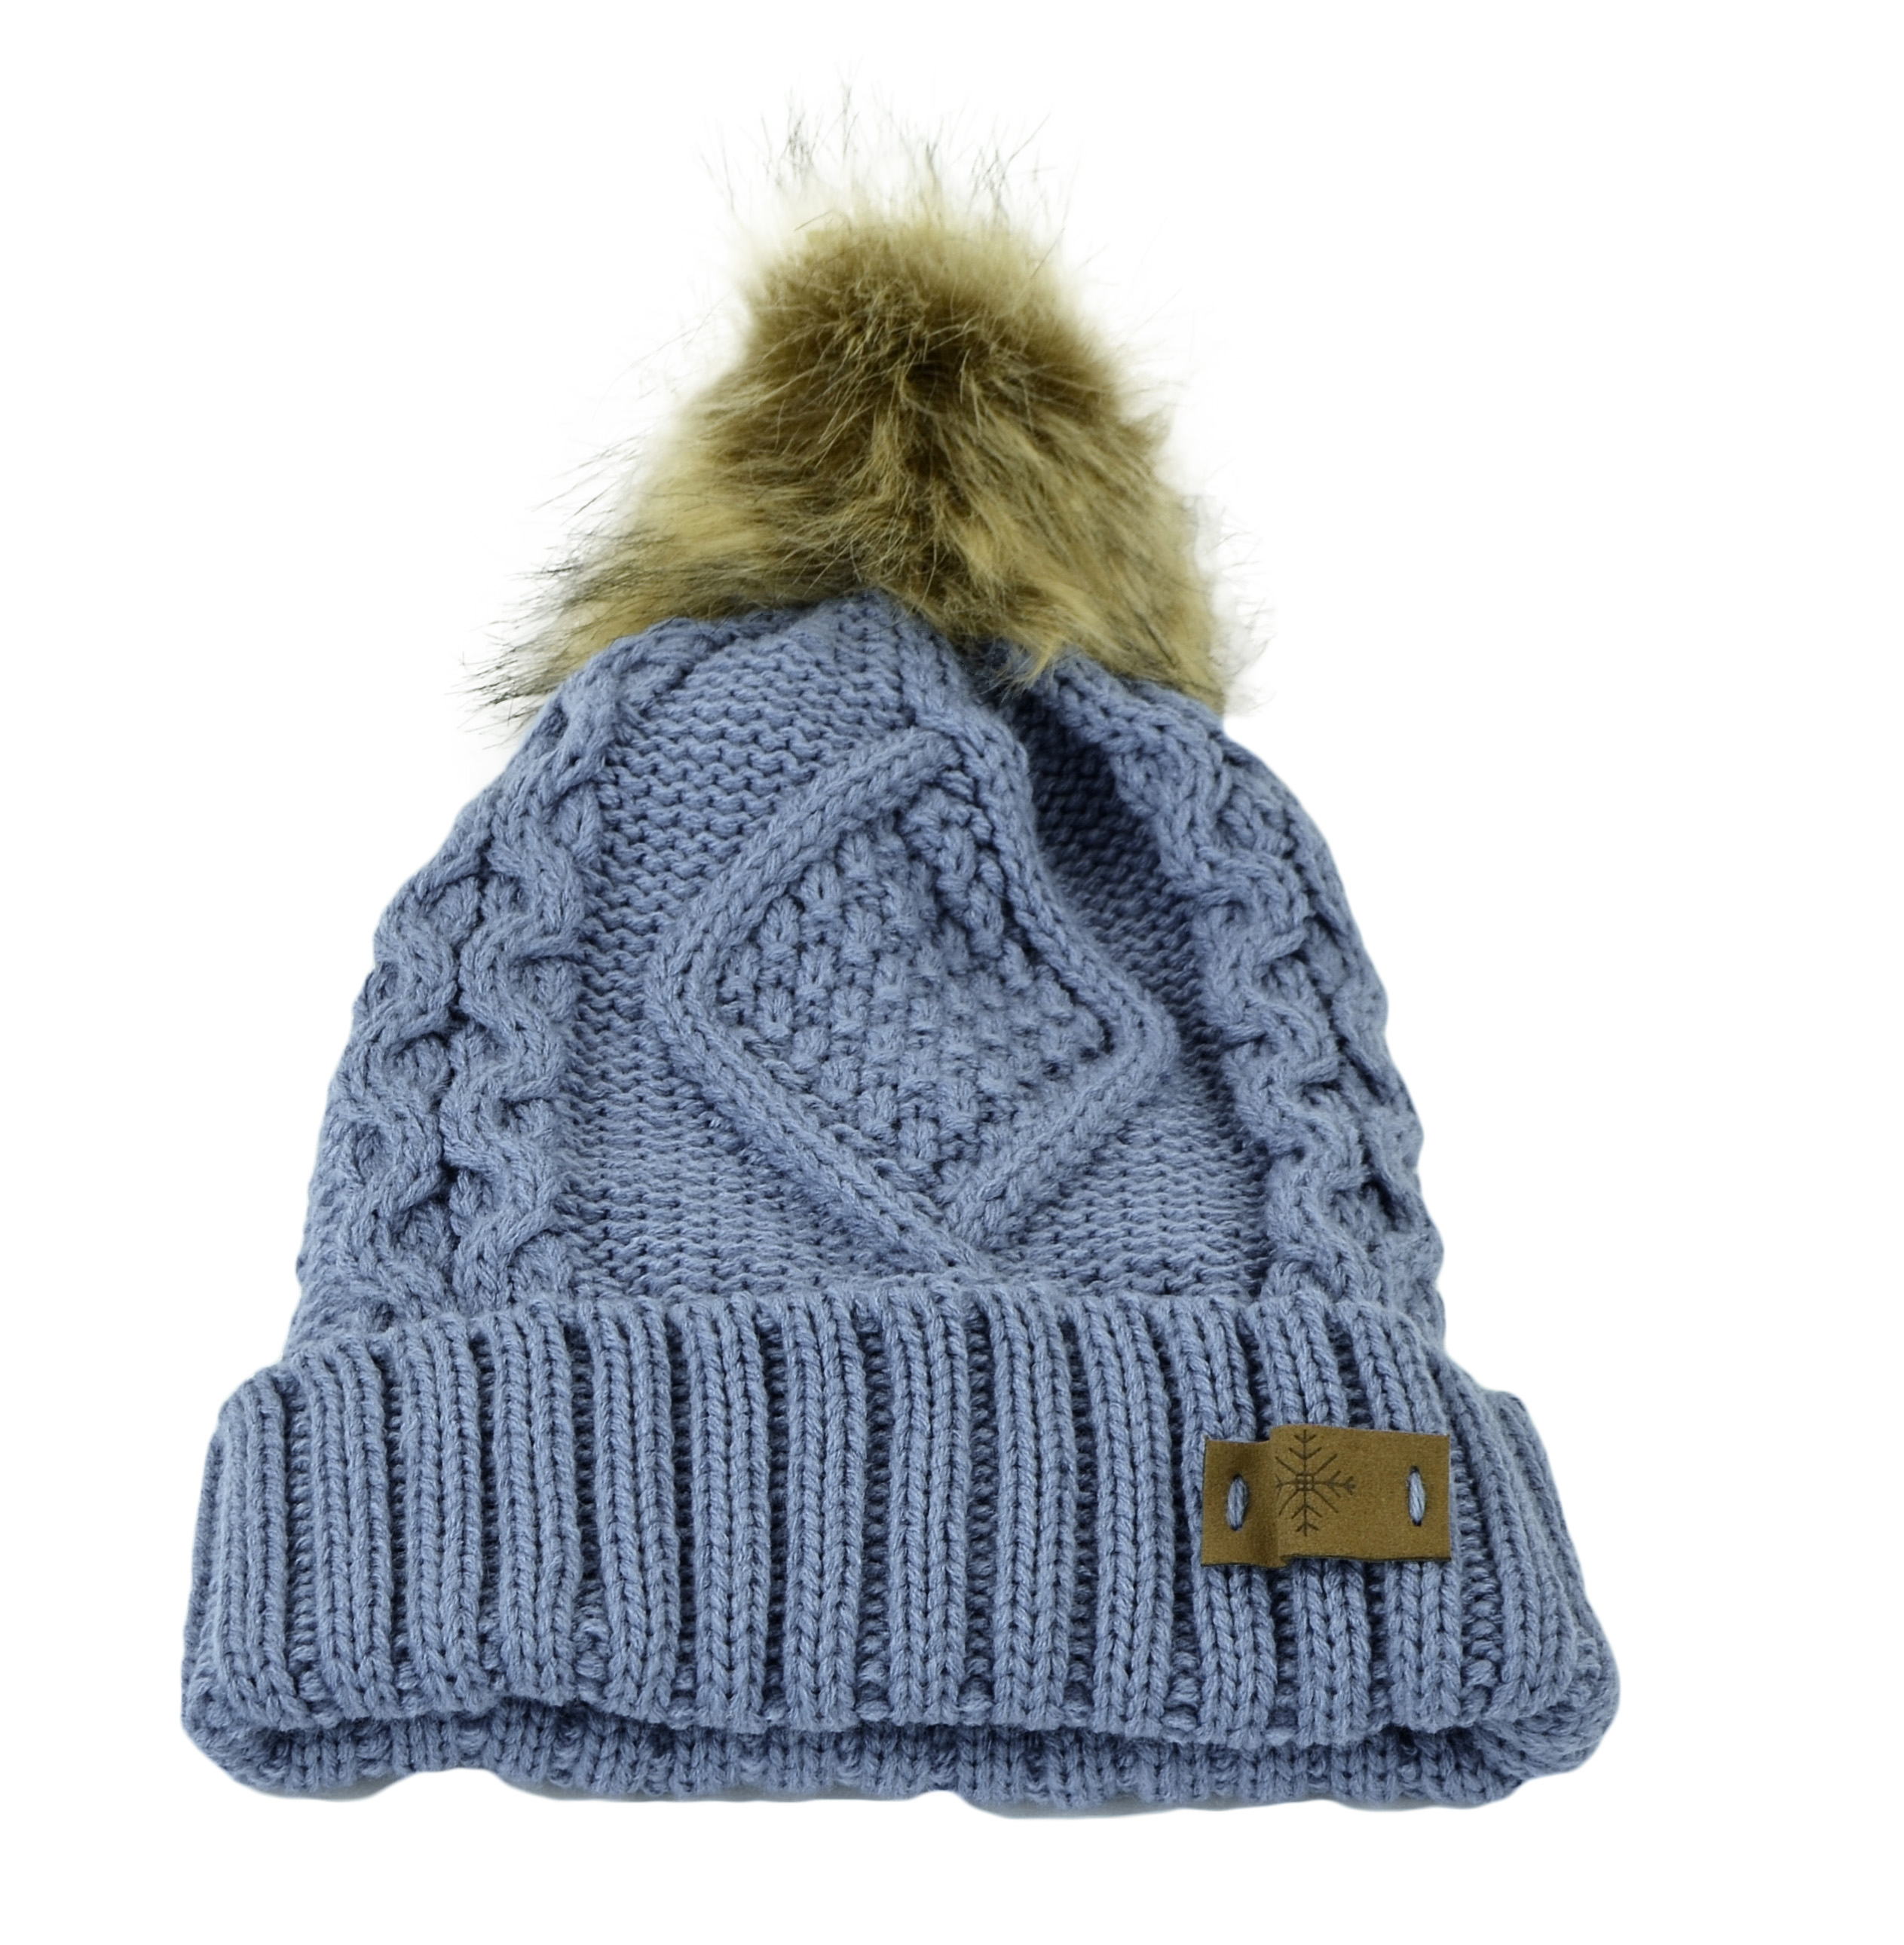 Belle Donne - Women's Winter Fleece Lined Cable Knitted Pom Pom Beanie Hat - INDI BLUE